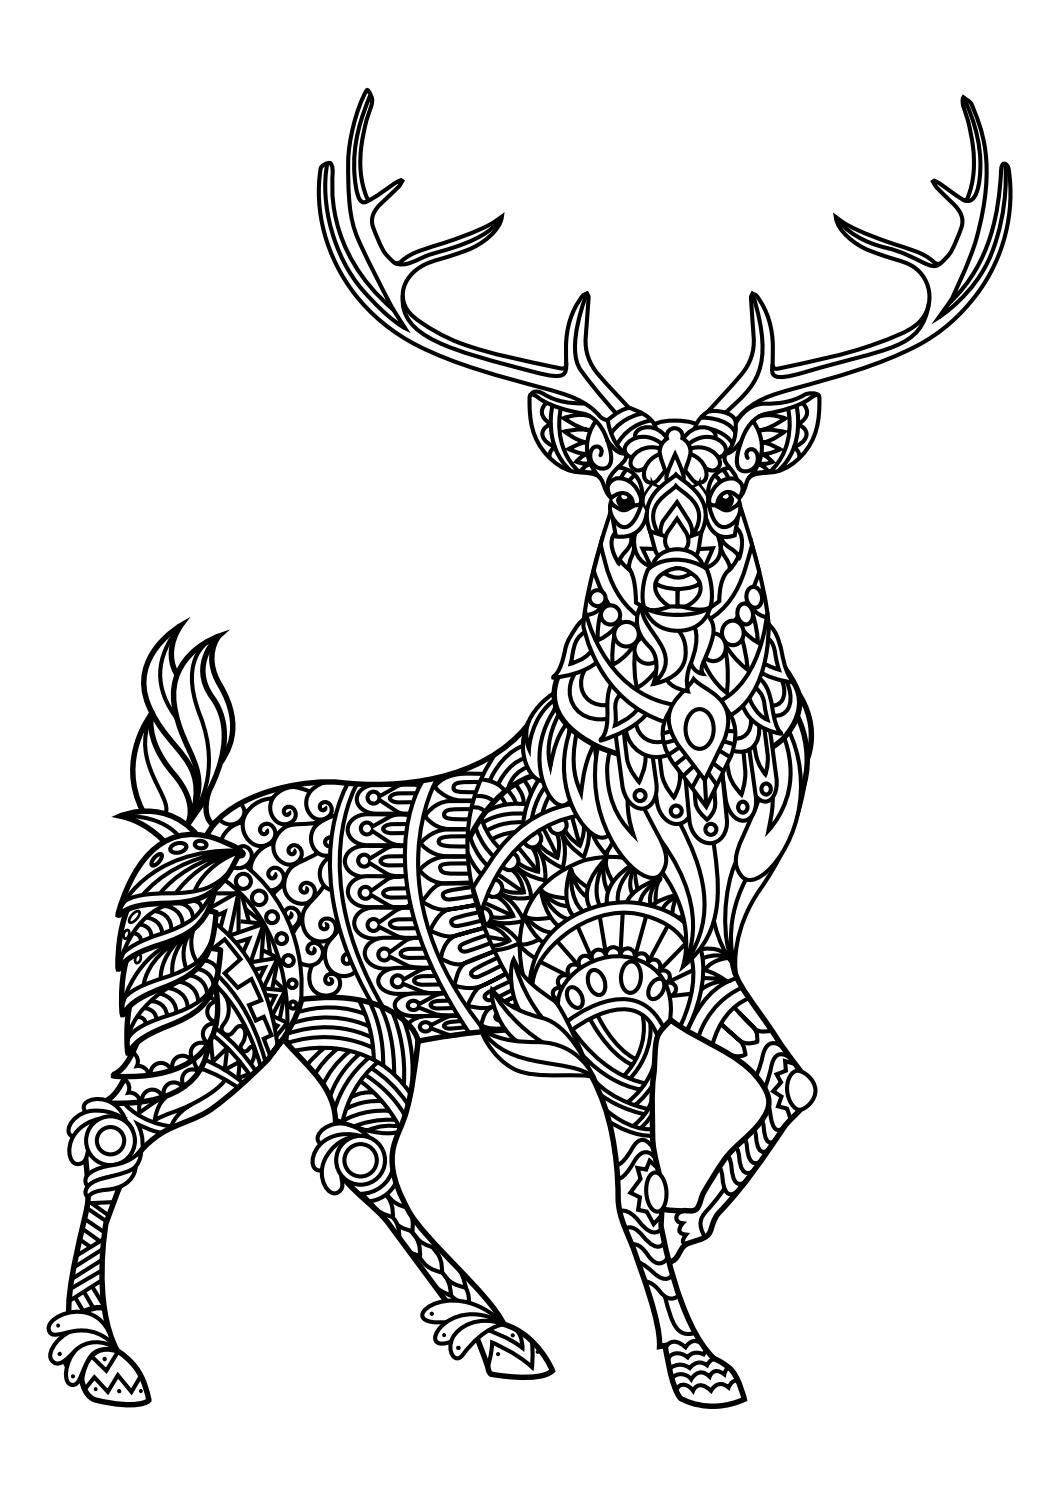 Animal coloring pages pdf Adult